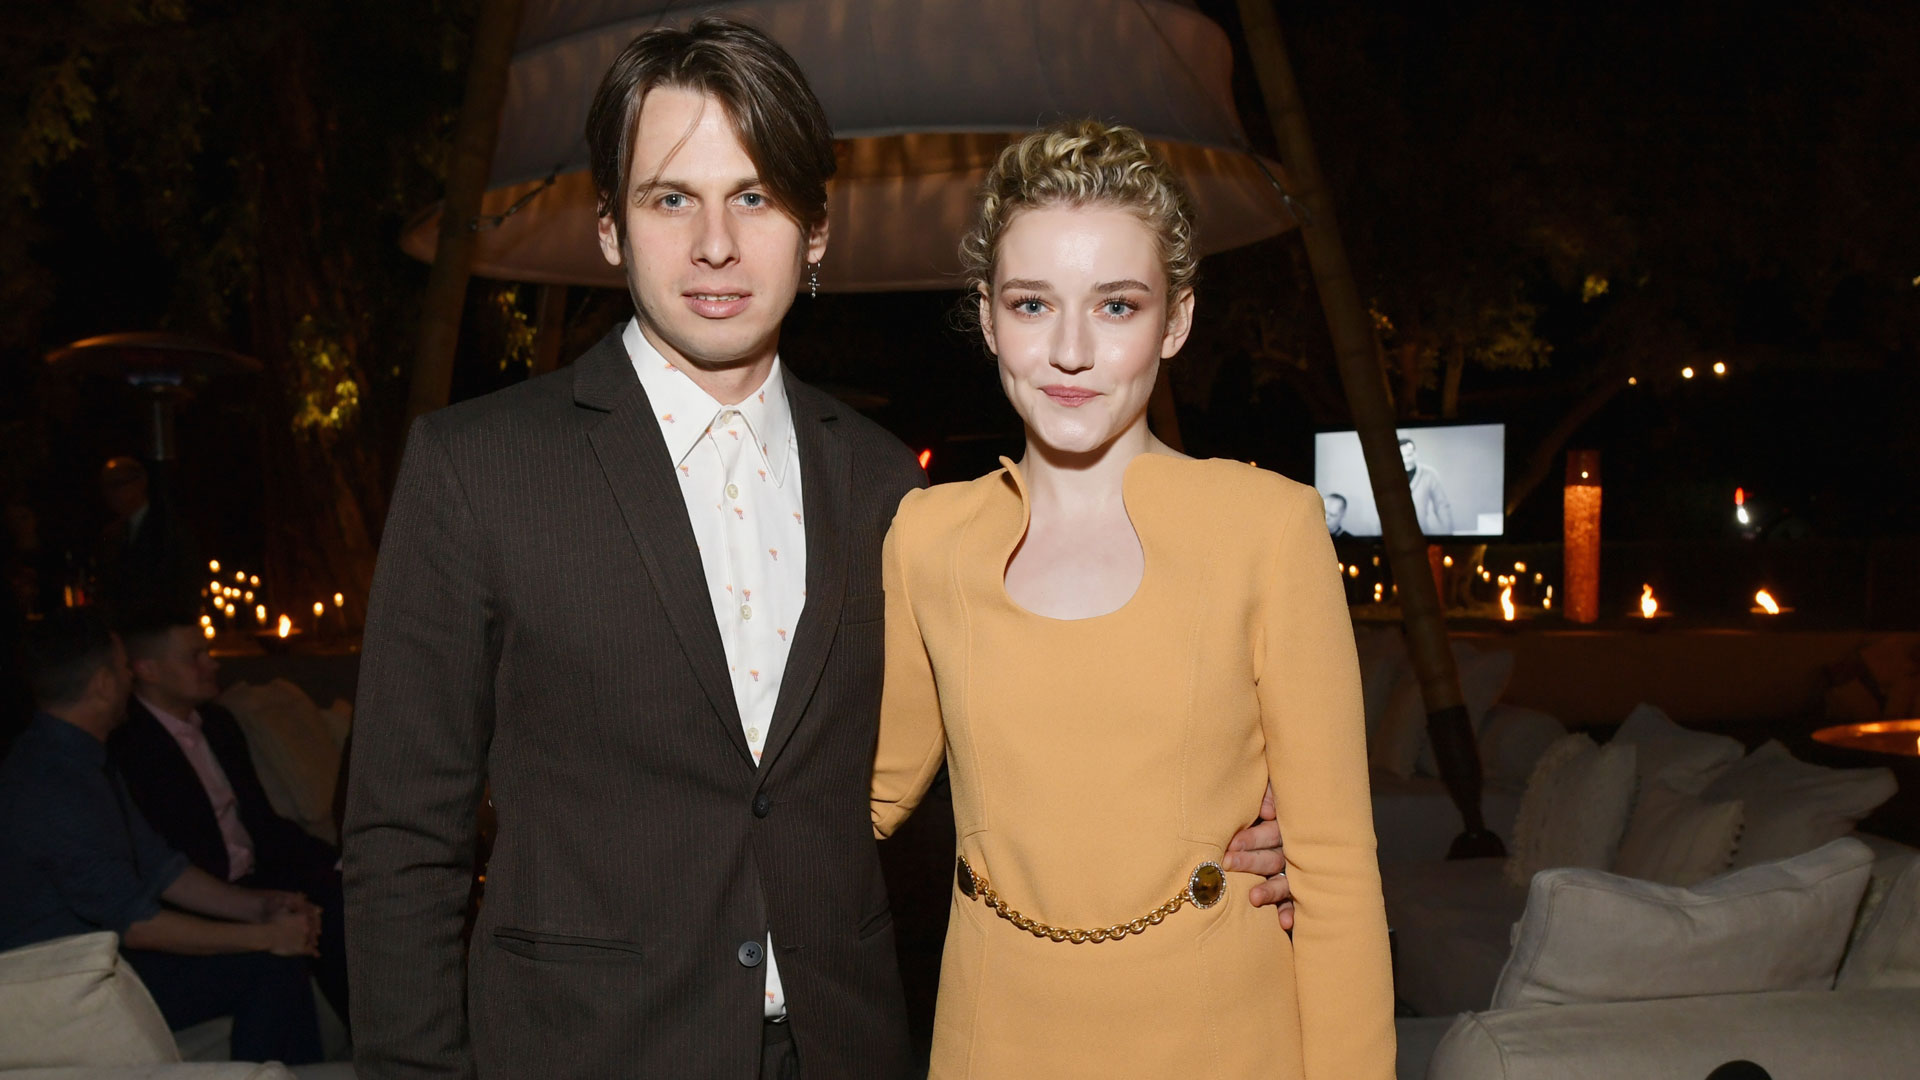 Ozark Star Julia Garner Marries Foster The People Frontman